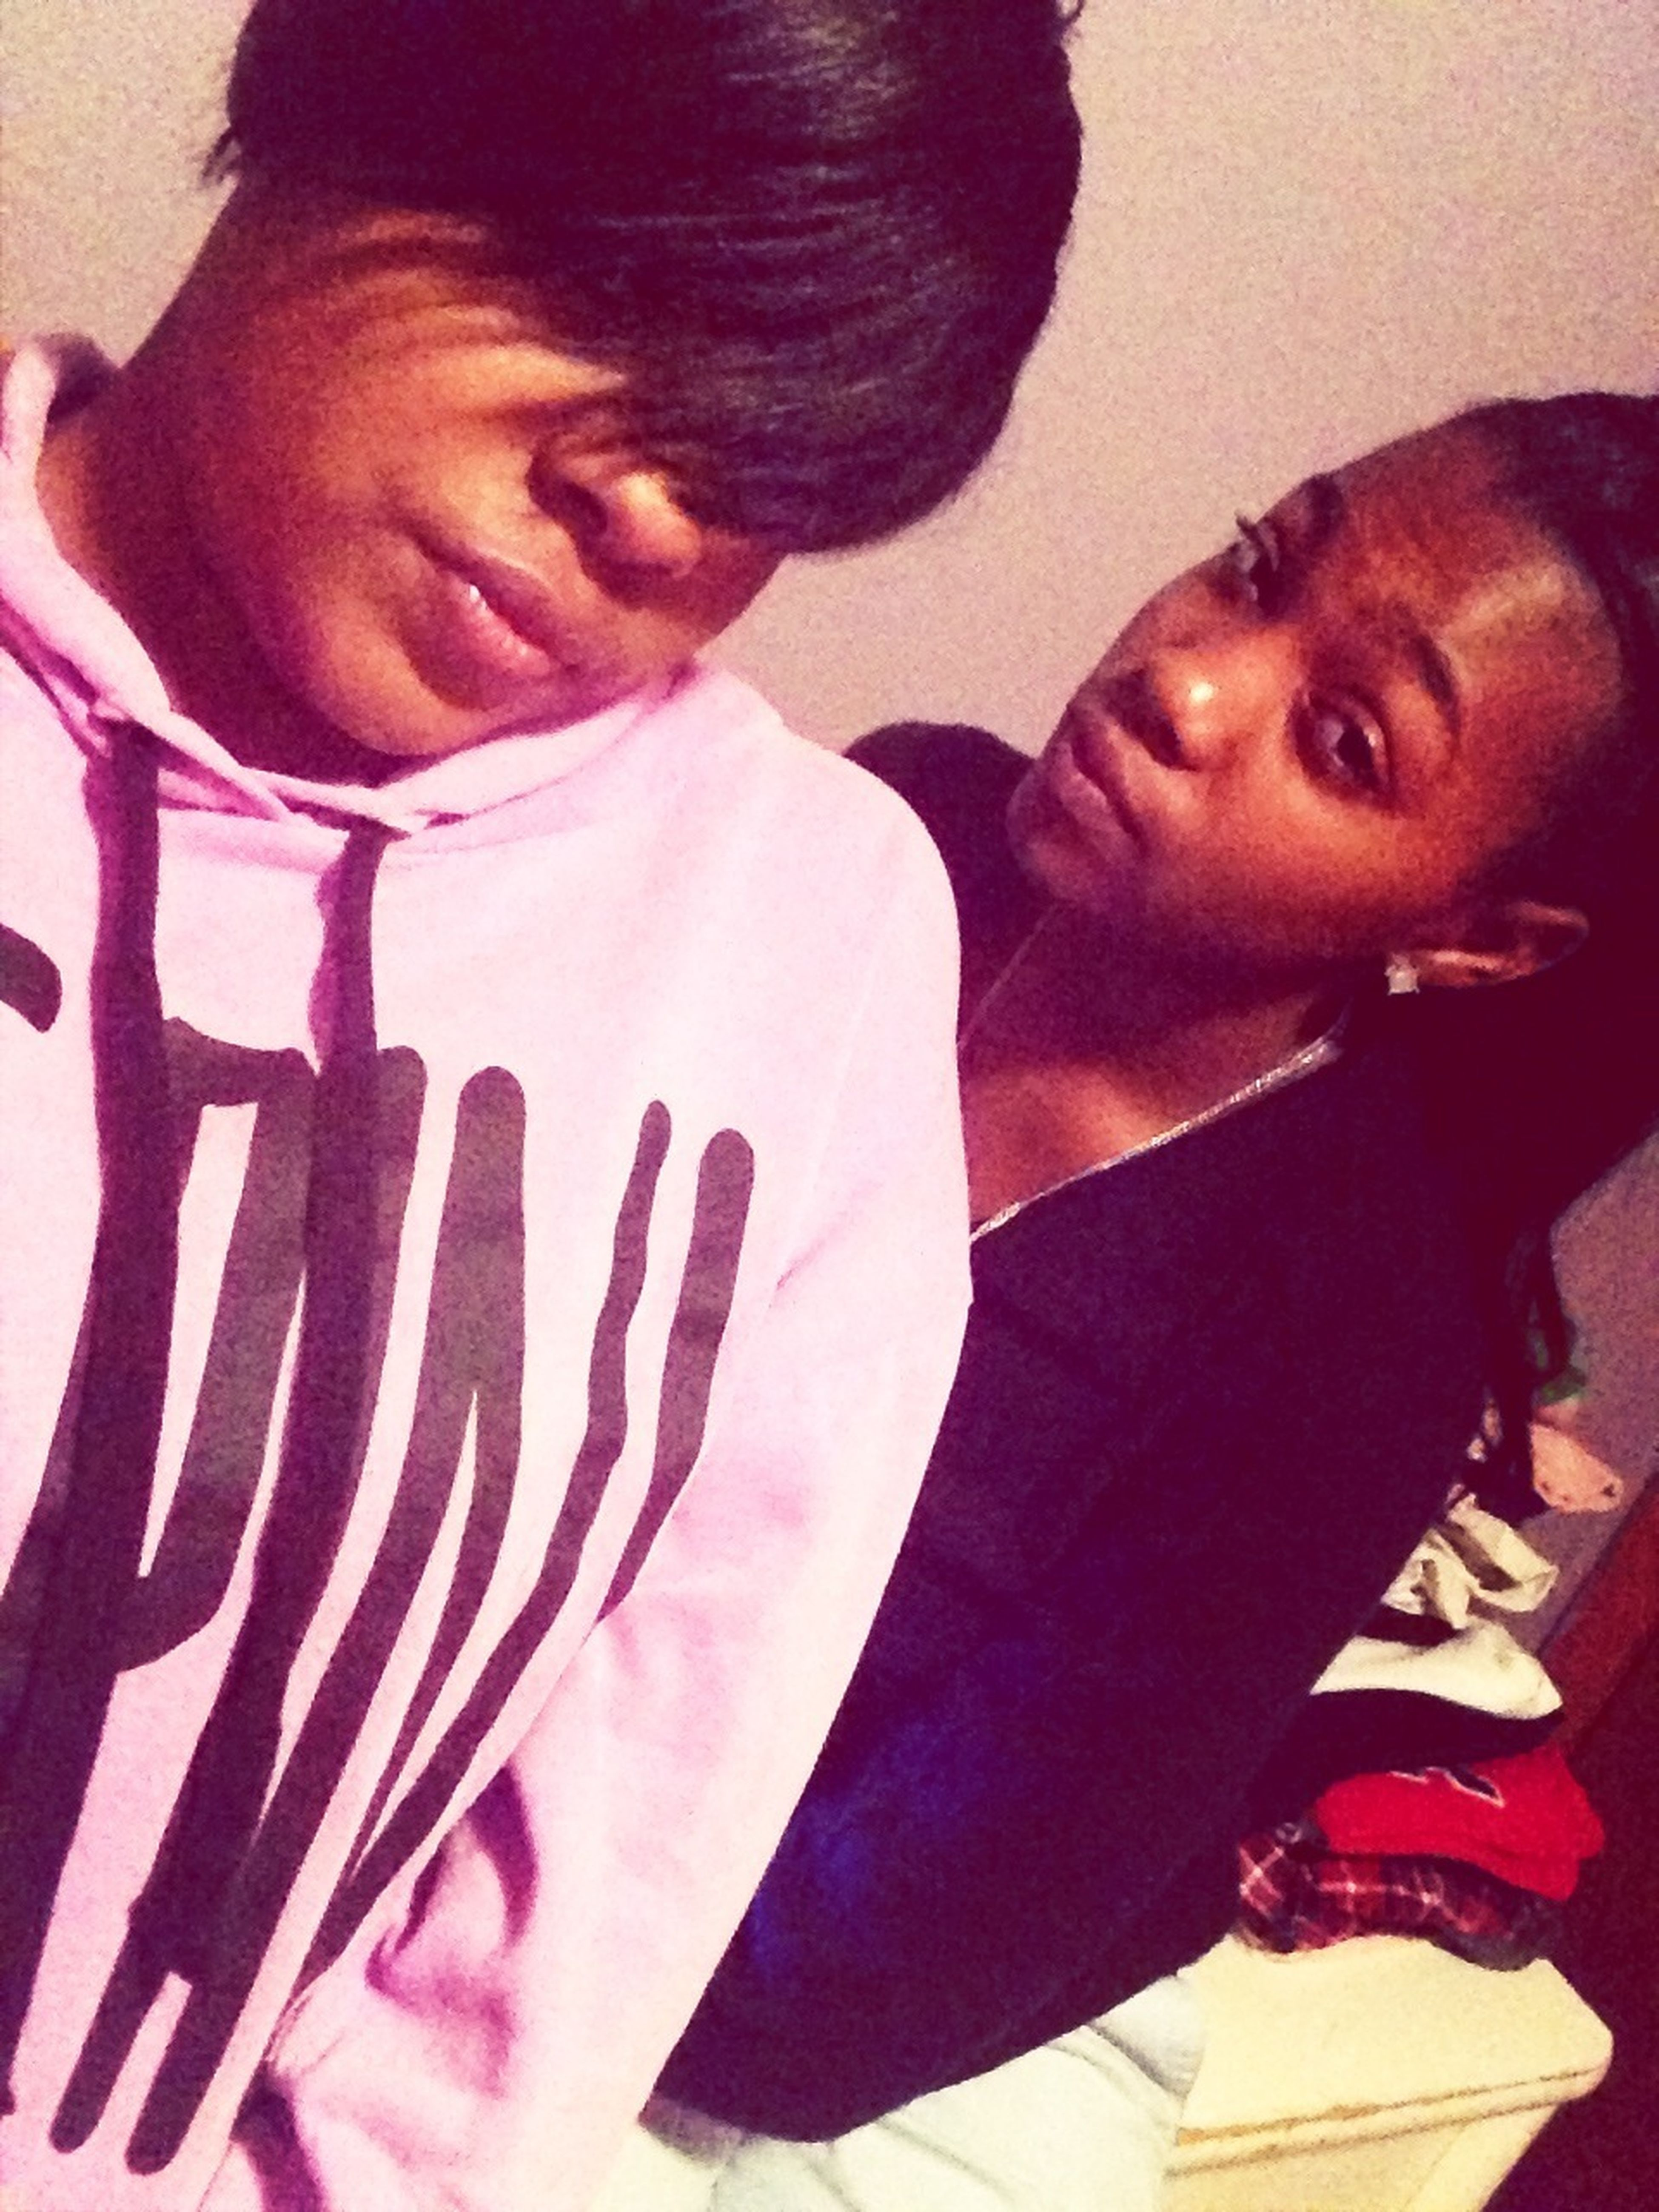 My Favv Cousin & I